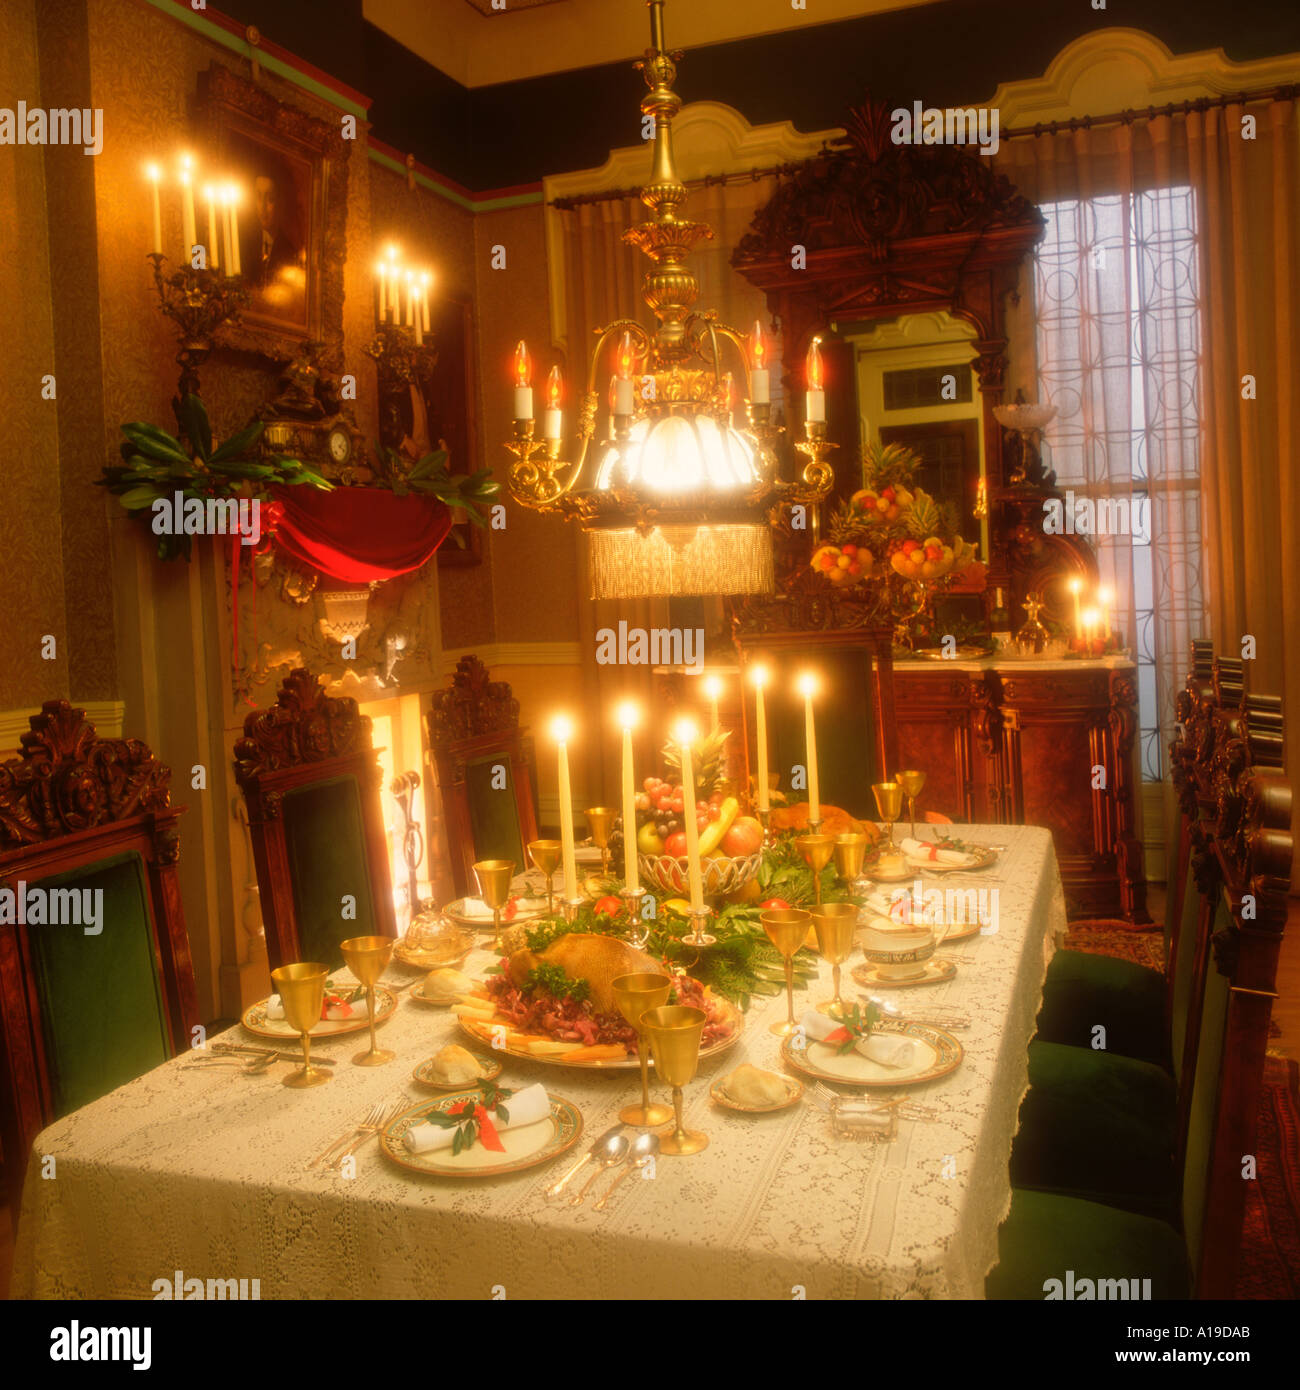 Victorian Christmas dinner table setting & Victorian Christmas dinner table setting Stock Photo: 105899 - Alamy